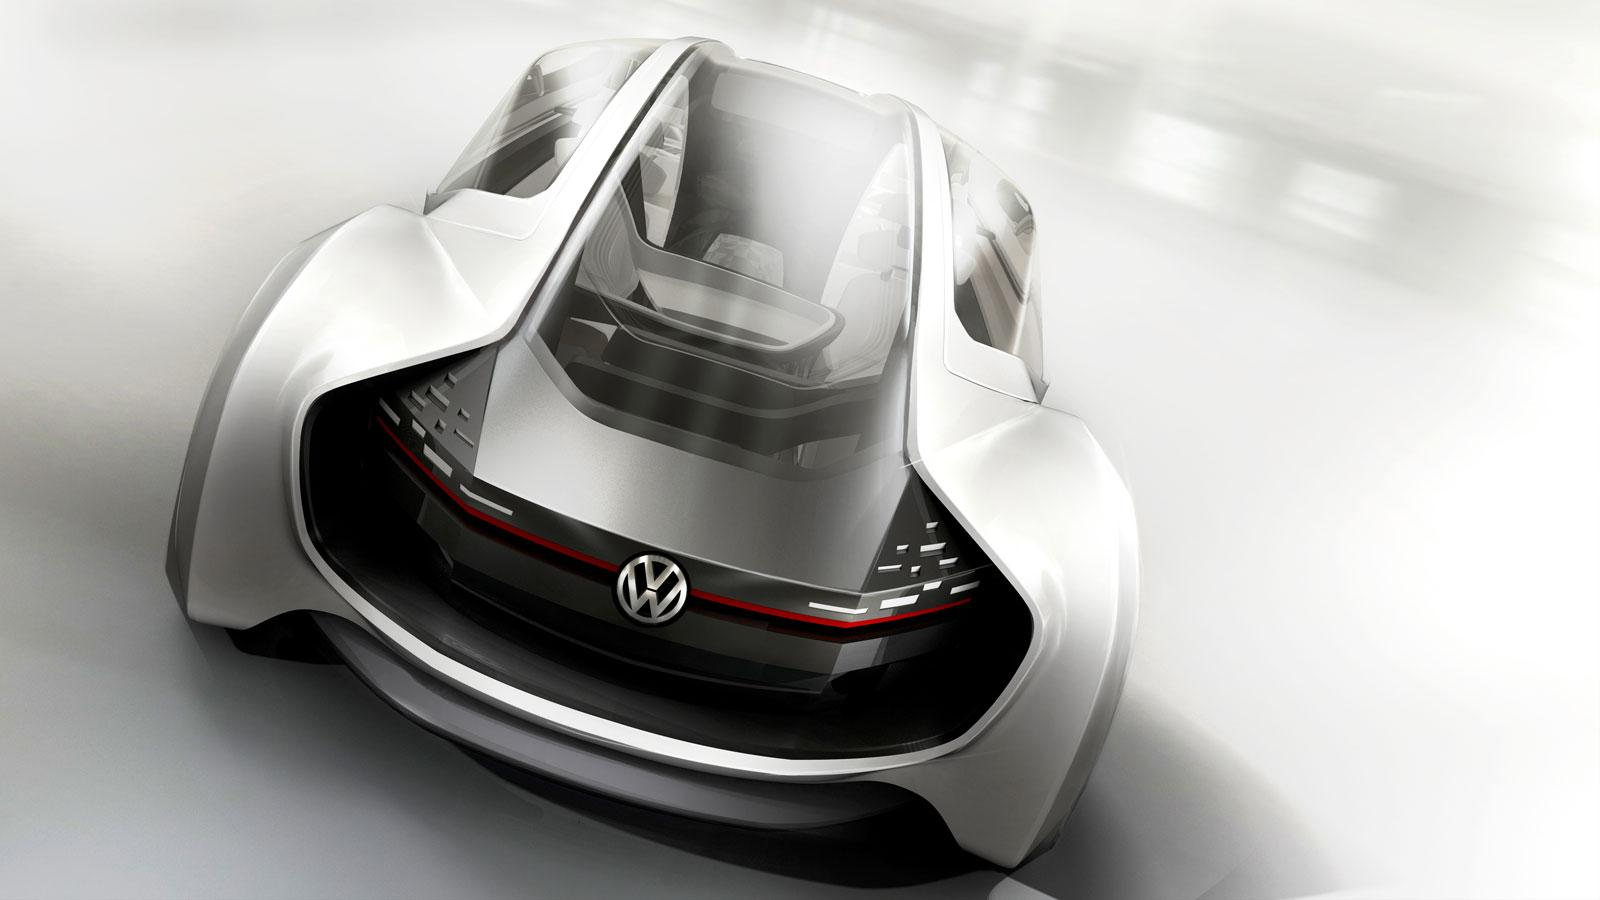 Volkswagen Trimaran Concept - Car Body Design